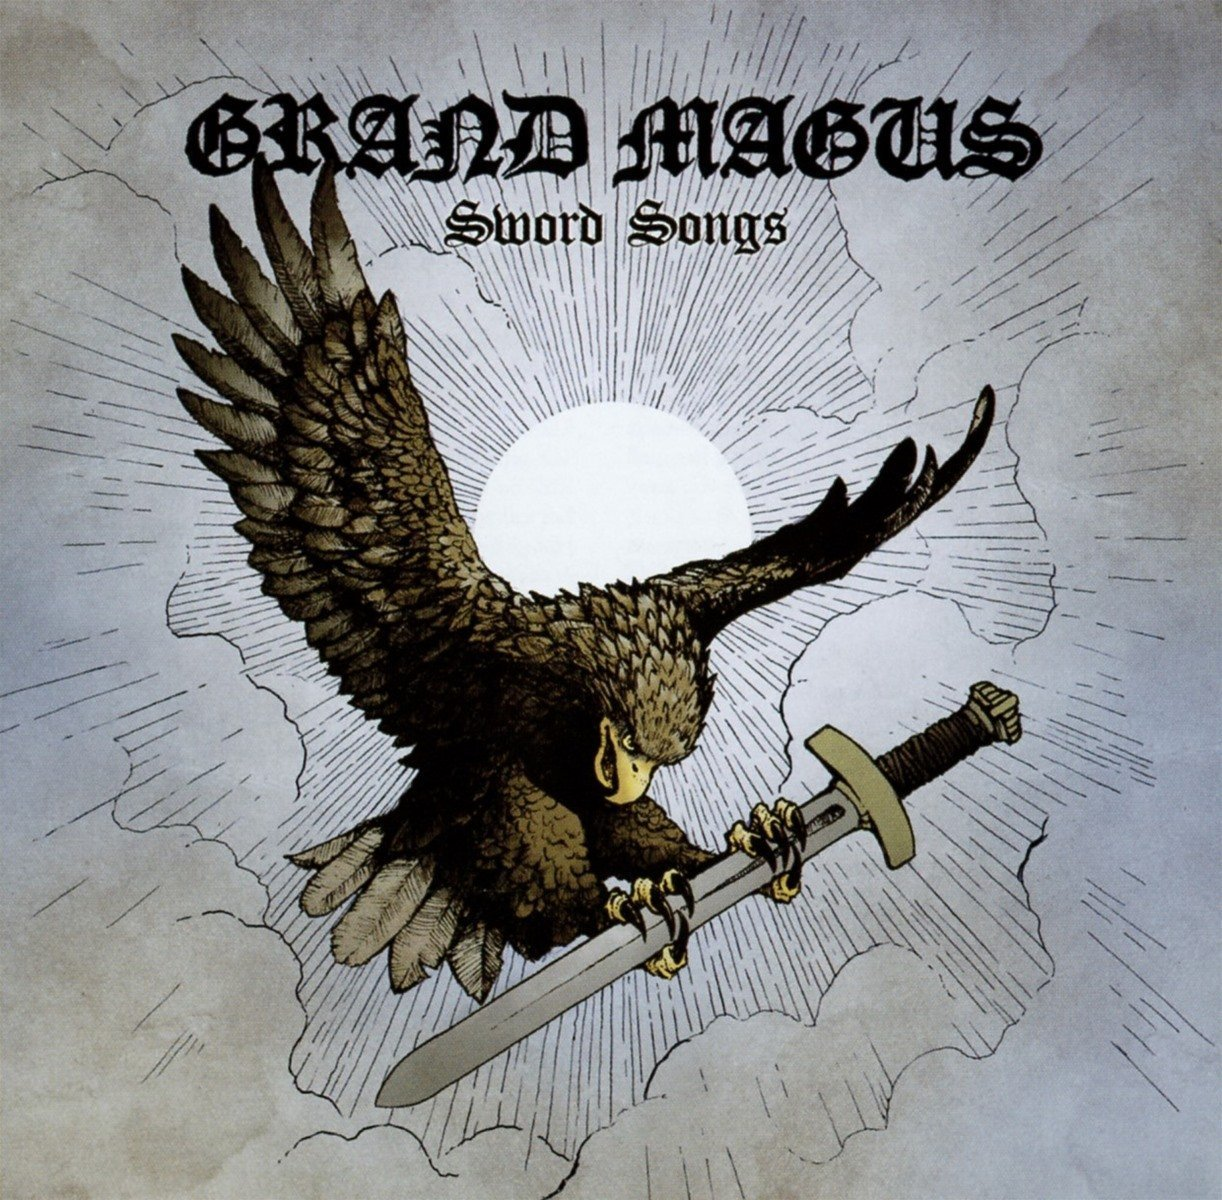 Grand Magus: Sword Songs (2016) Book Cover